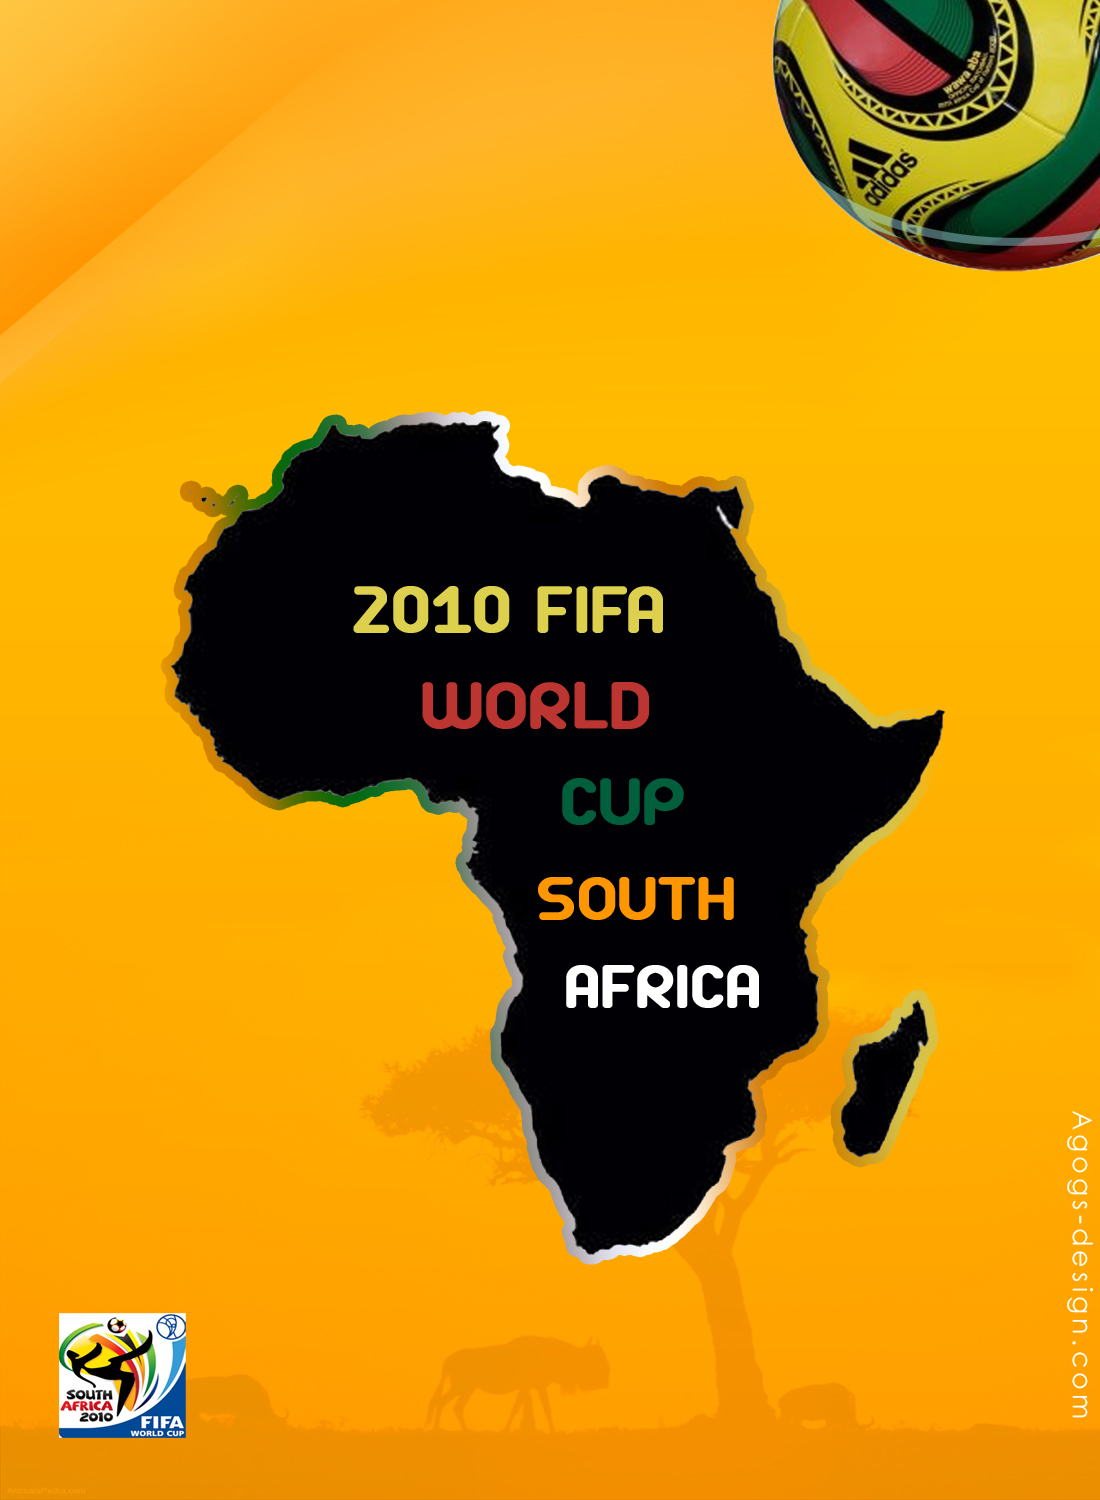 fifa report on match fixing in the weeks before the 2010 world cup